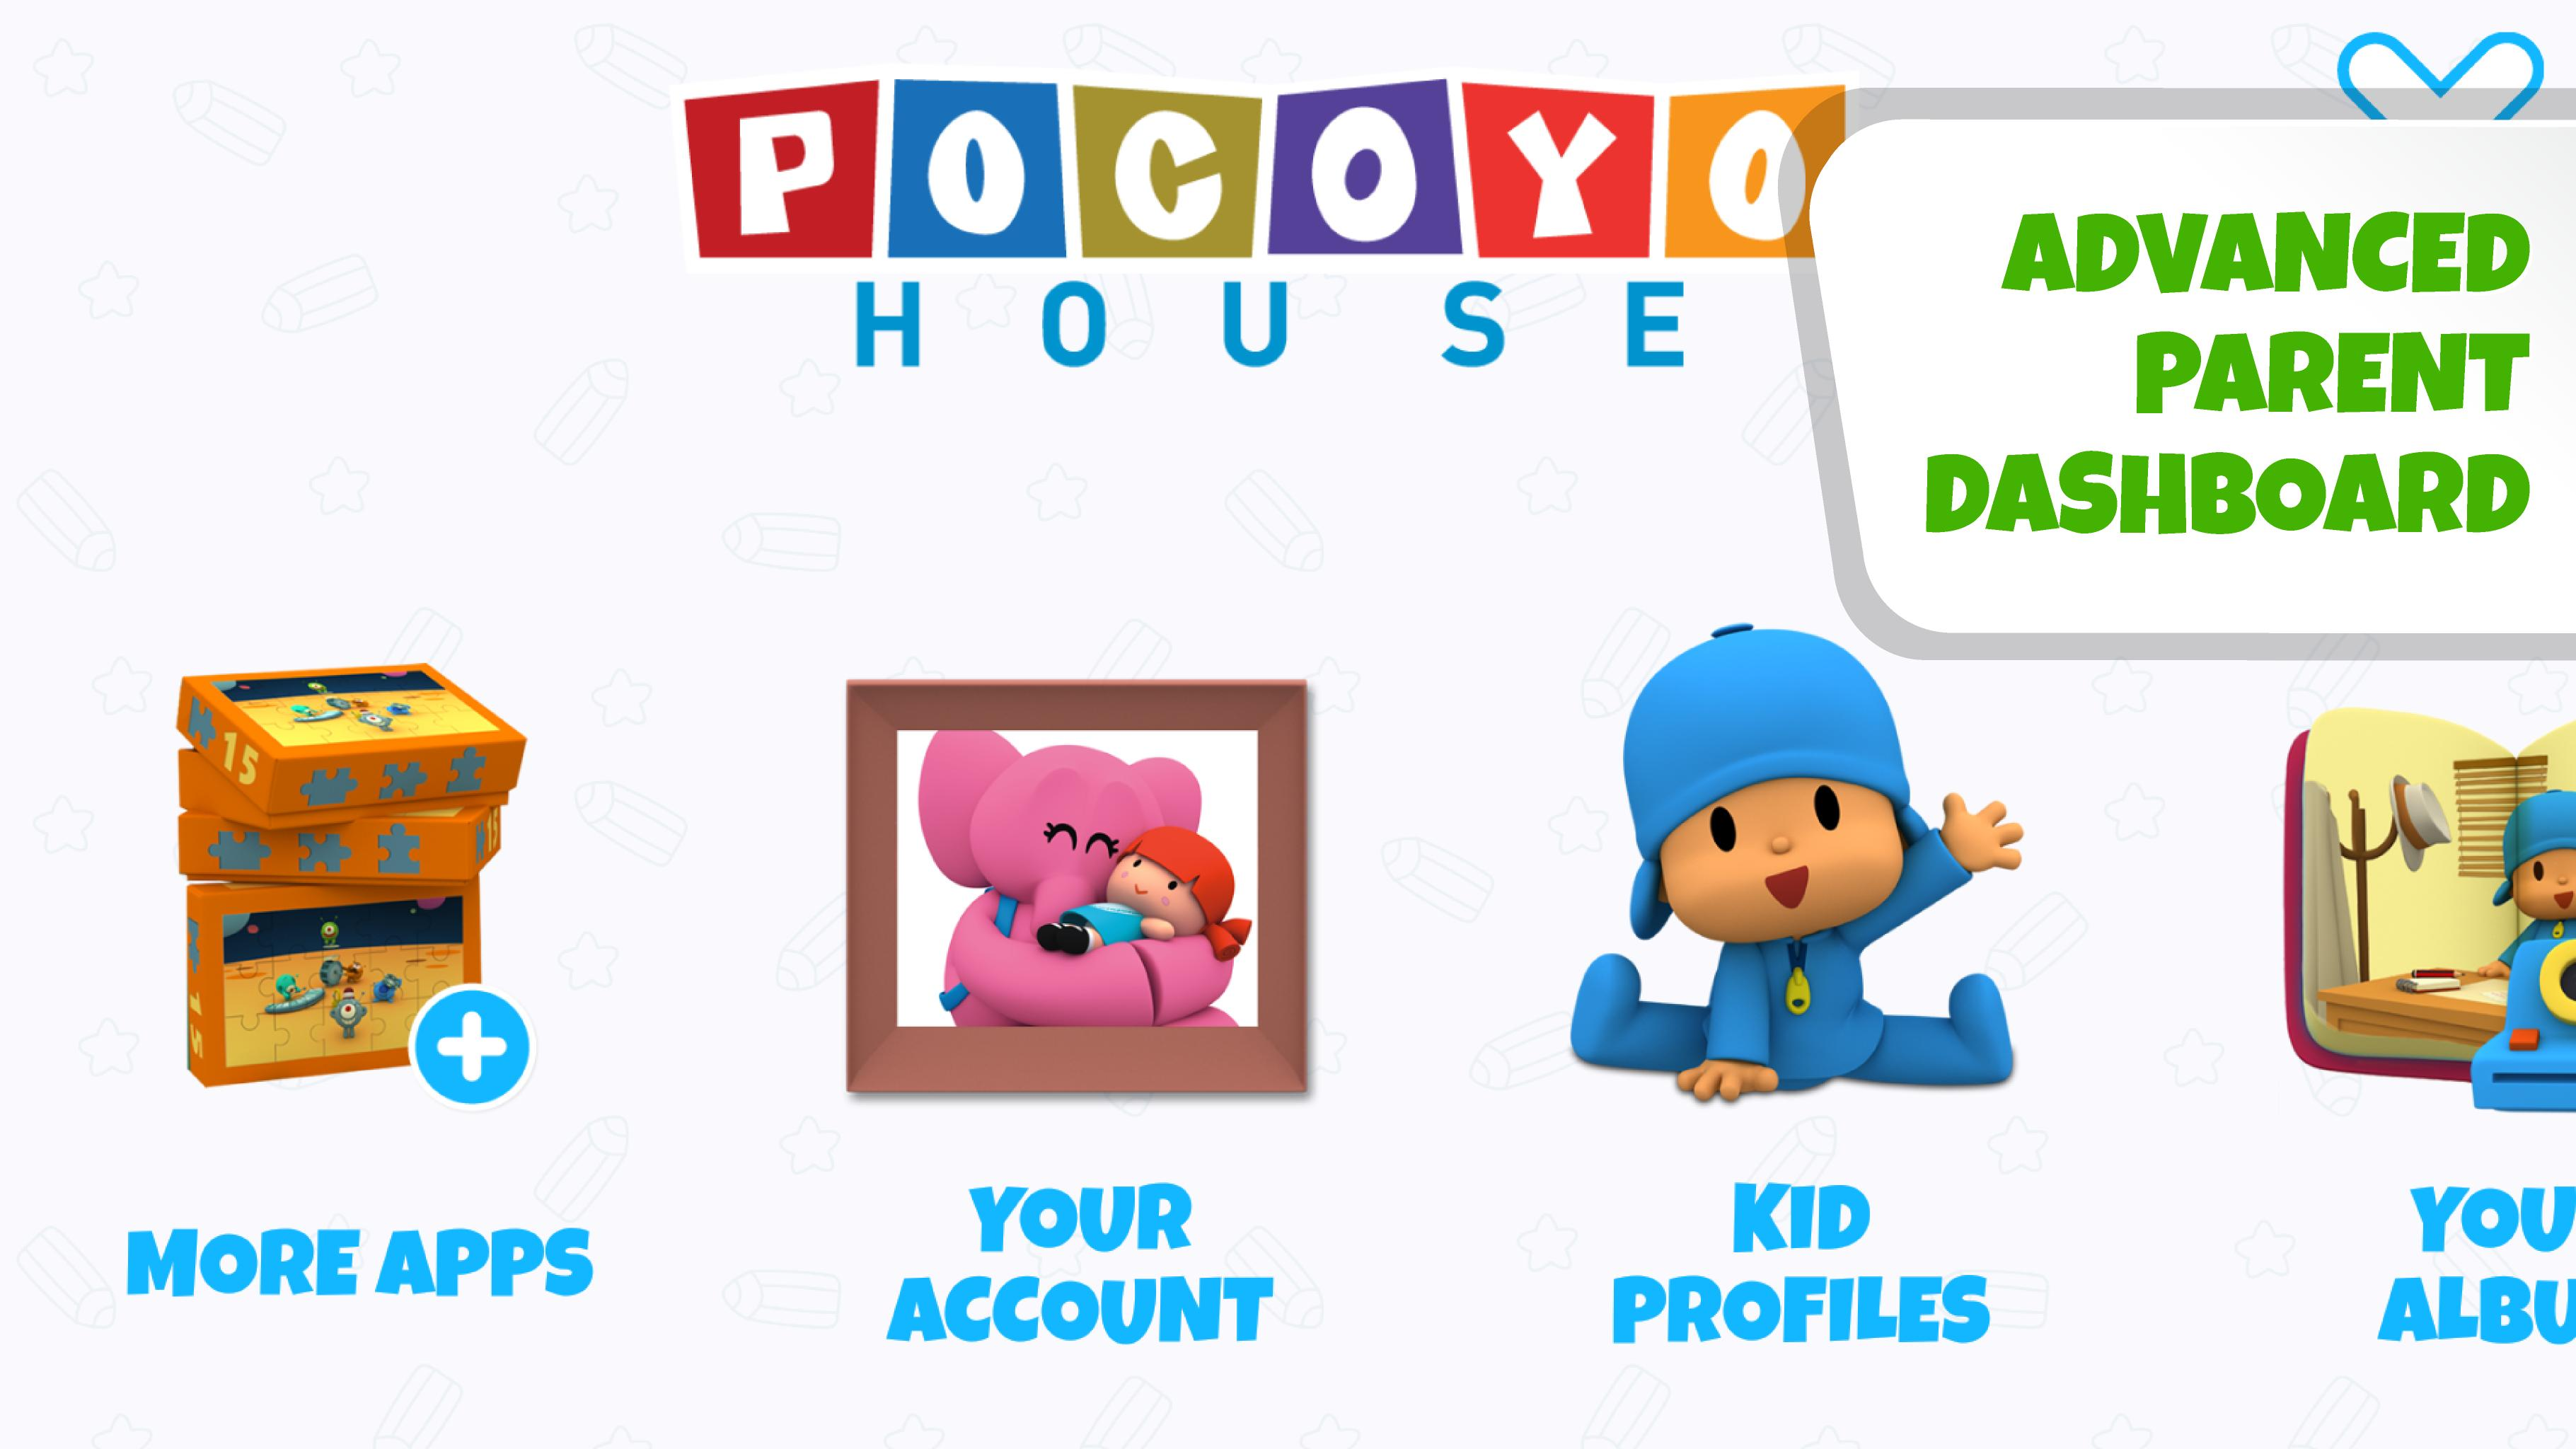 Pocoyo House best videos and apps for kids 3.1.3 Screenshot 12